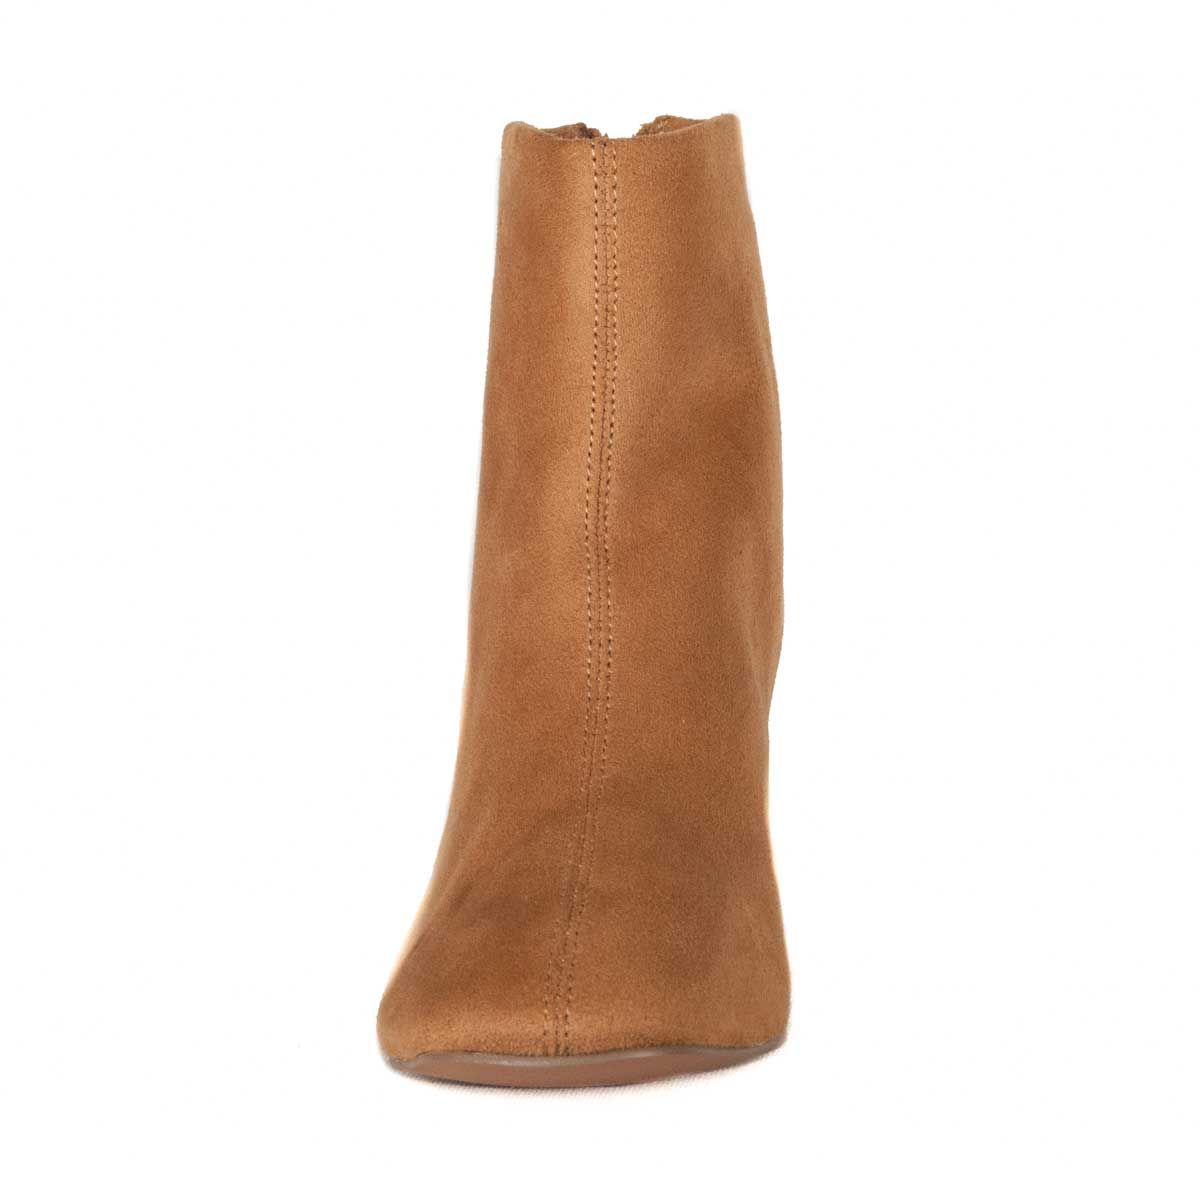 Montevita Heeled Ankle Boot in Camel